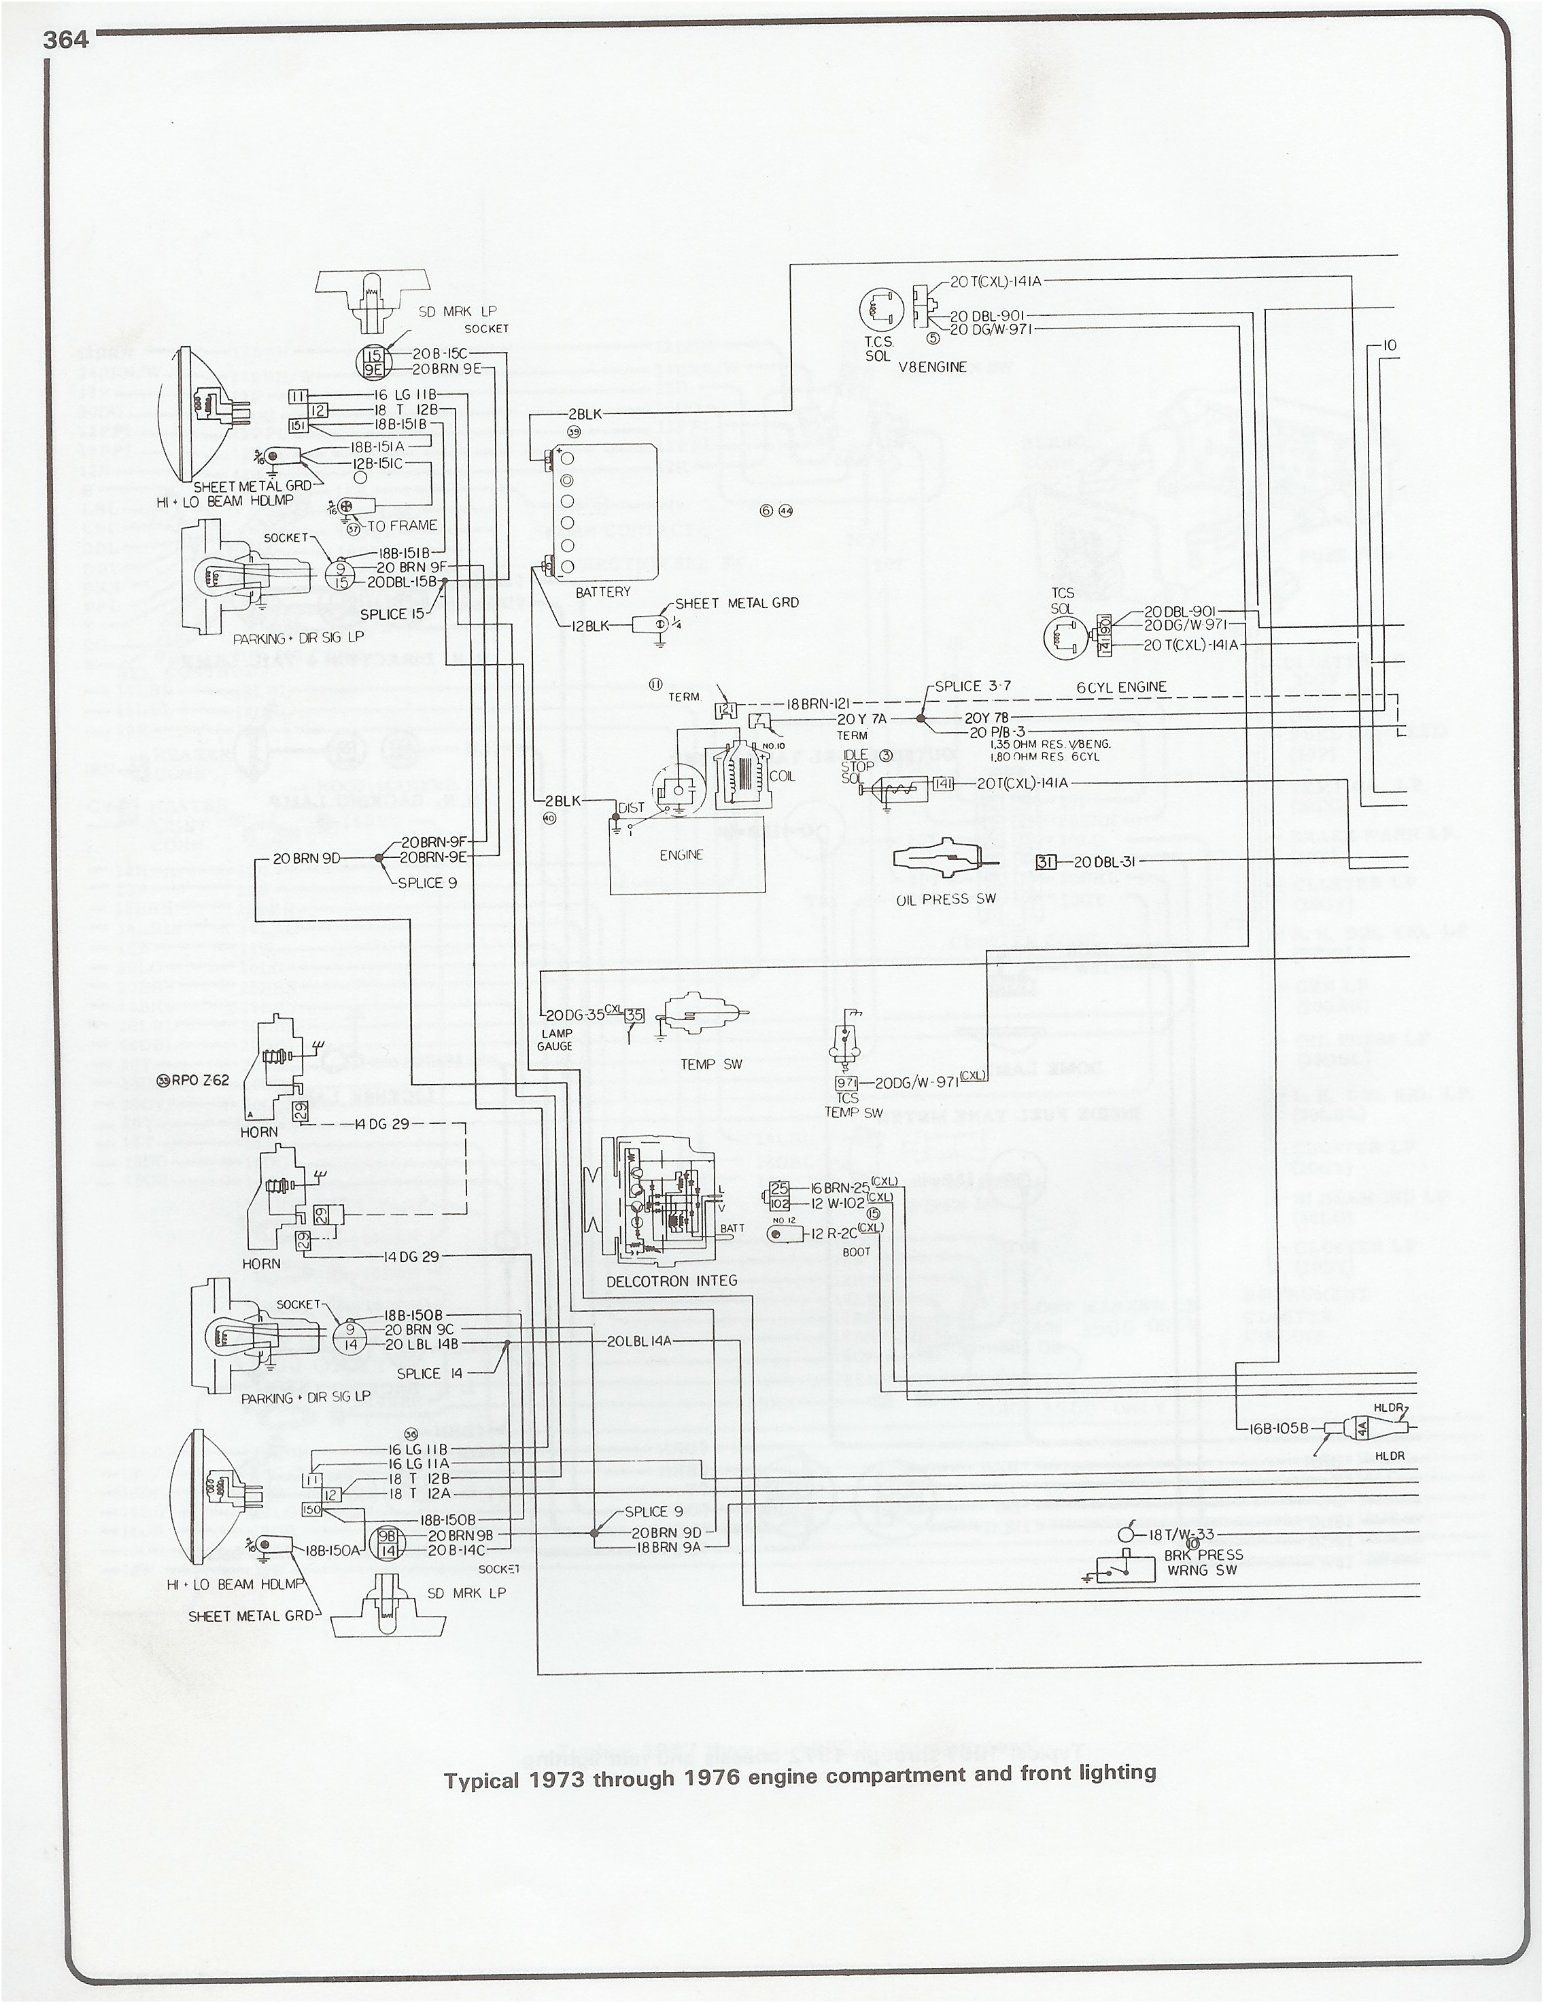 chevy truck rear axle diagram on chevy 350 oil pressure valve chevy silverado ac system diagram [ 1544 x 2003 Pixel ]